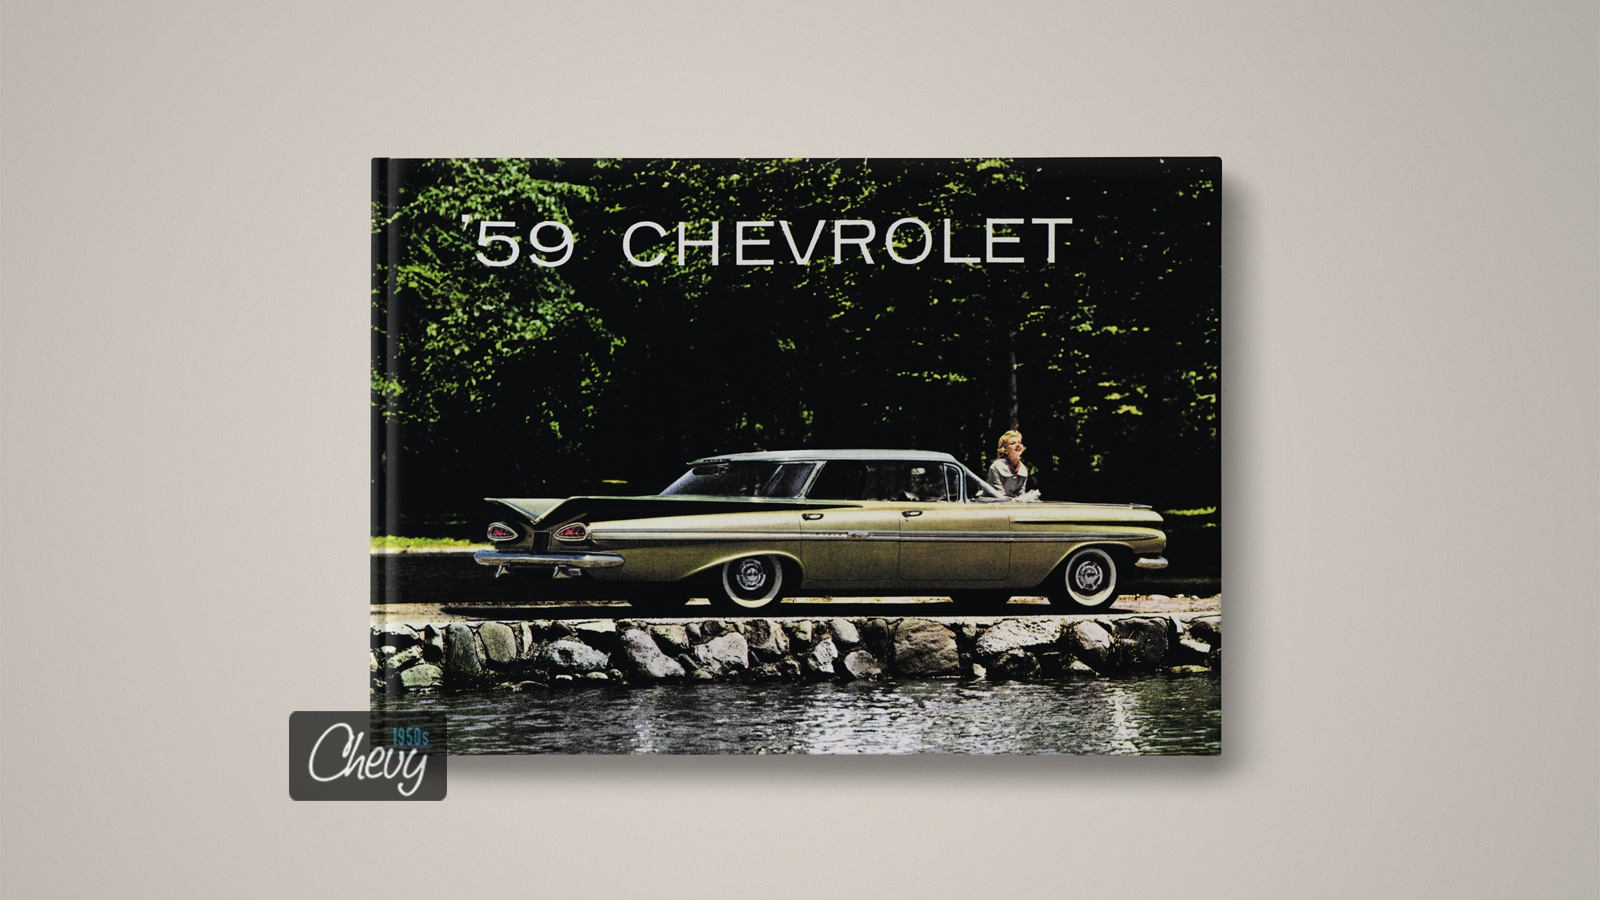 1959 Chevrolet Showroom Album